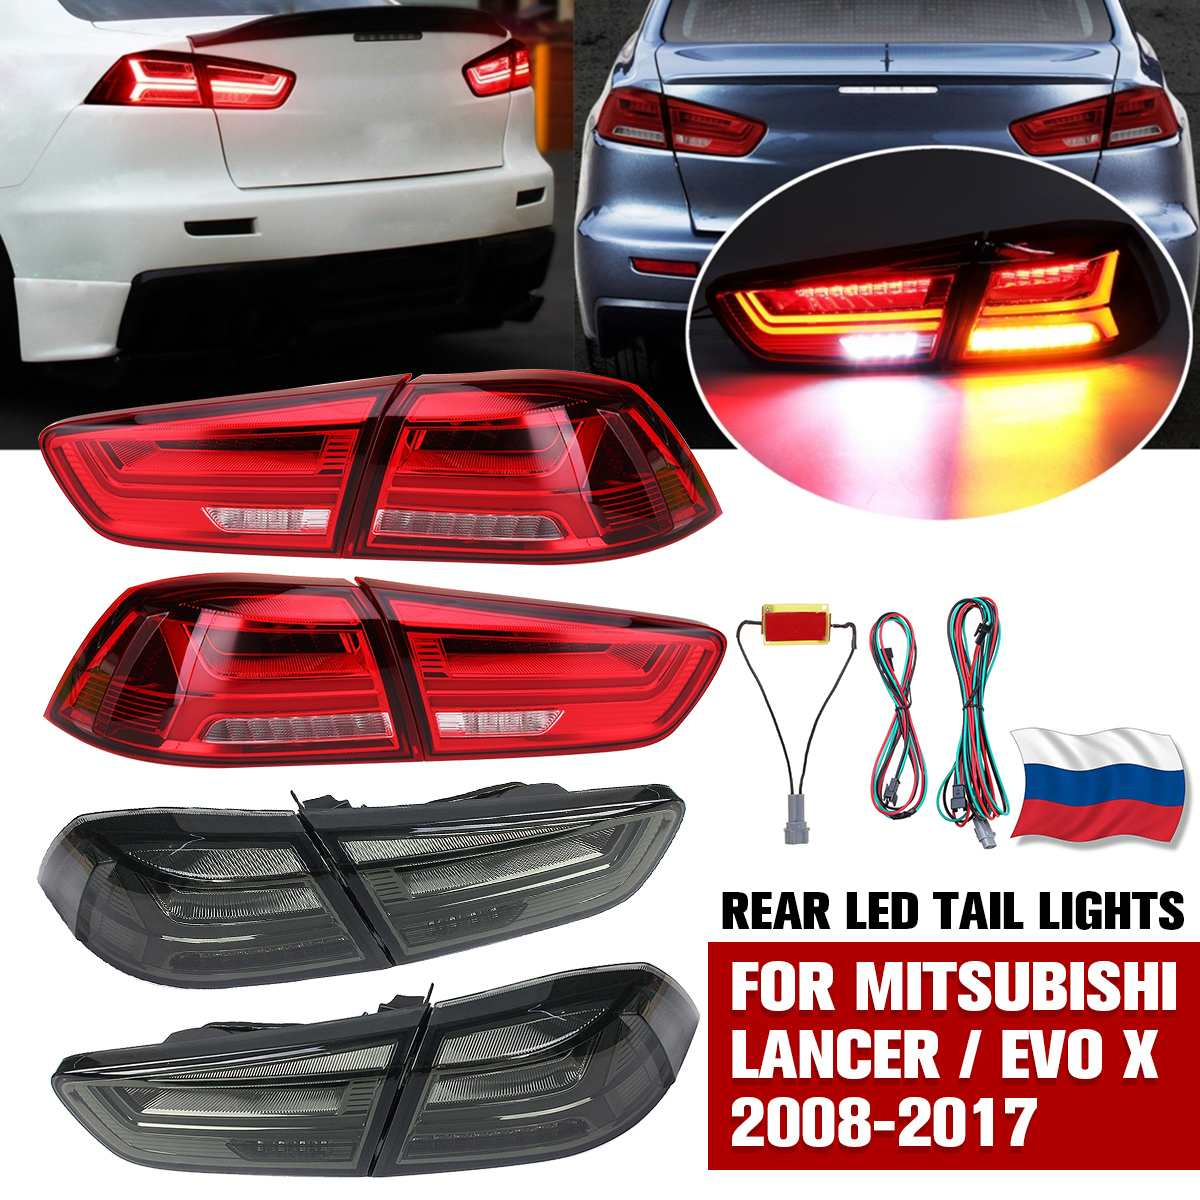 Left&Right Side Rear <font><b>LED</b></font> Tail Light Assembly Signal Brake Stop Lamps for <font><b>Mitsubishi</b></font> <font><b>Lancer</b></font>/ EVO <font><b>X</b></font> 2008-2017 DRL Taillight image